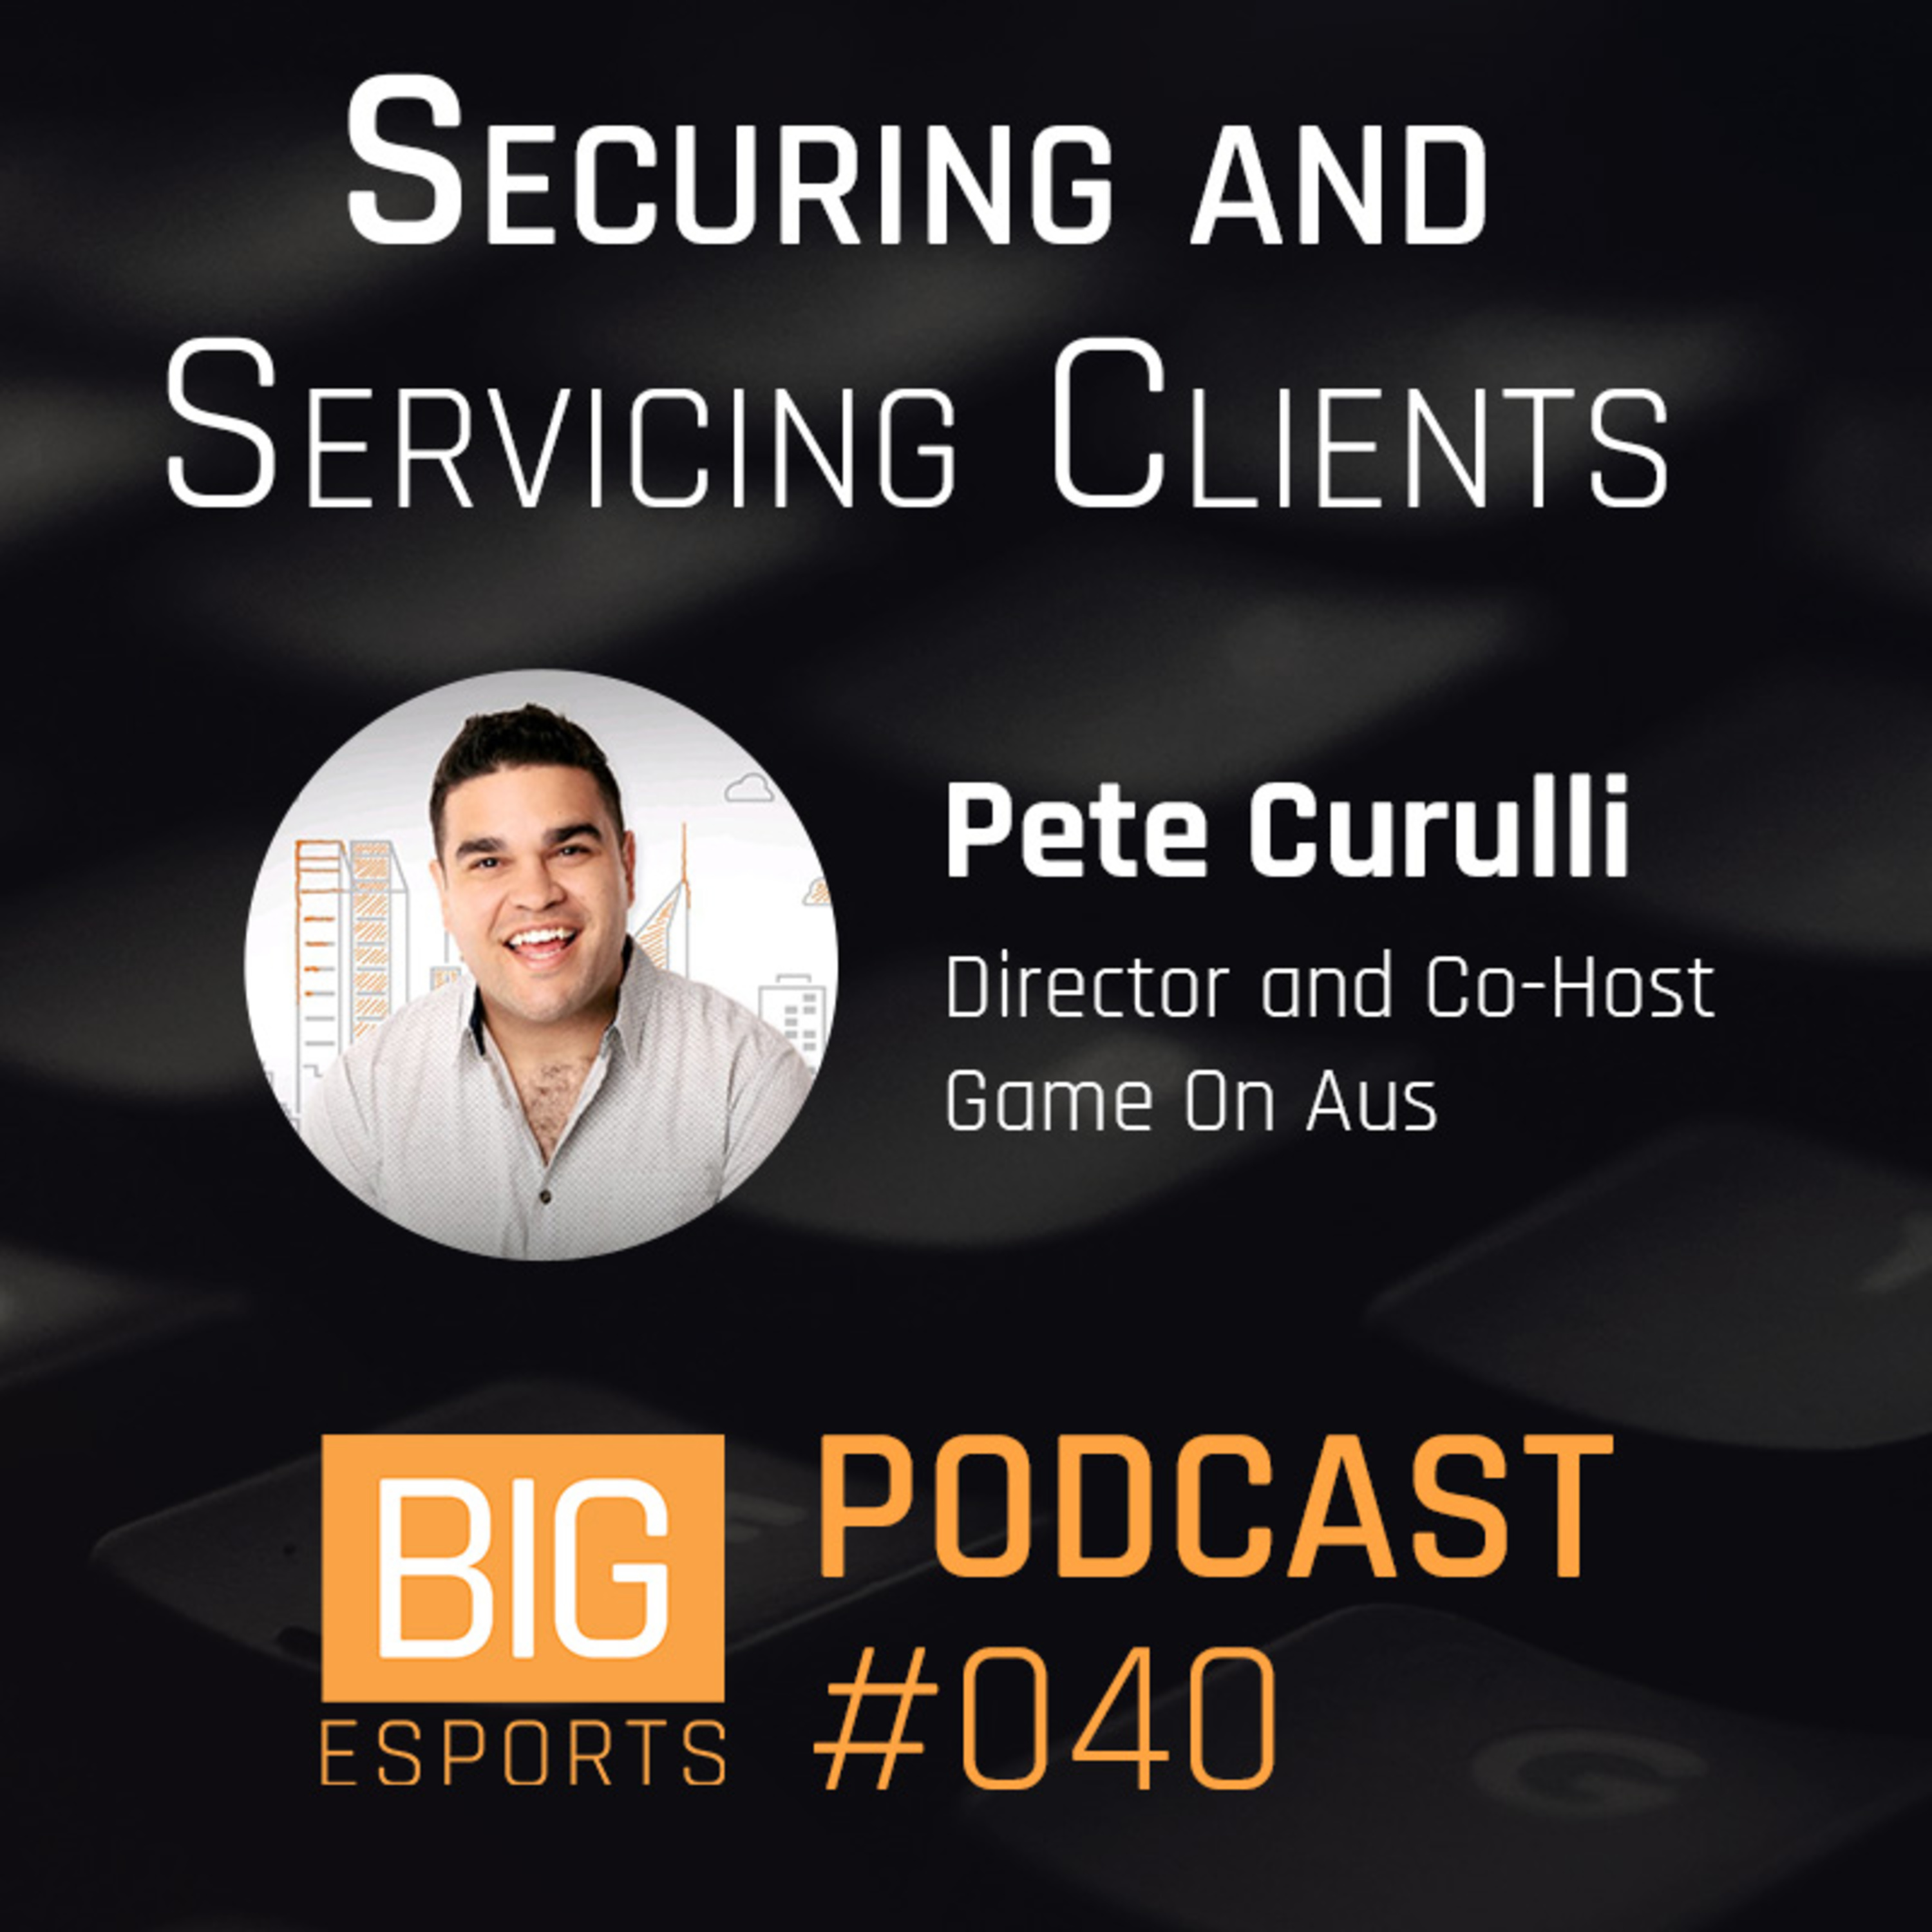 #040 - Securing and Servicing Clients